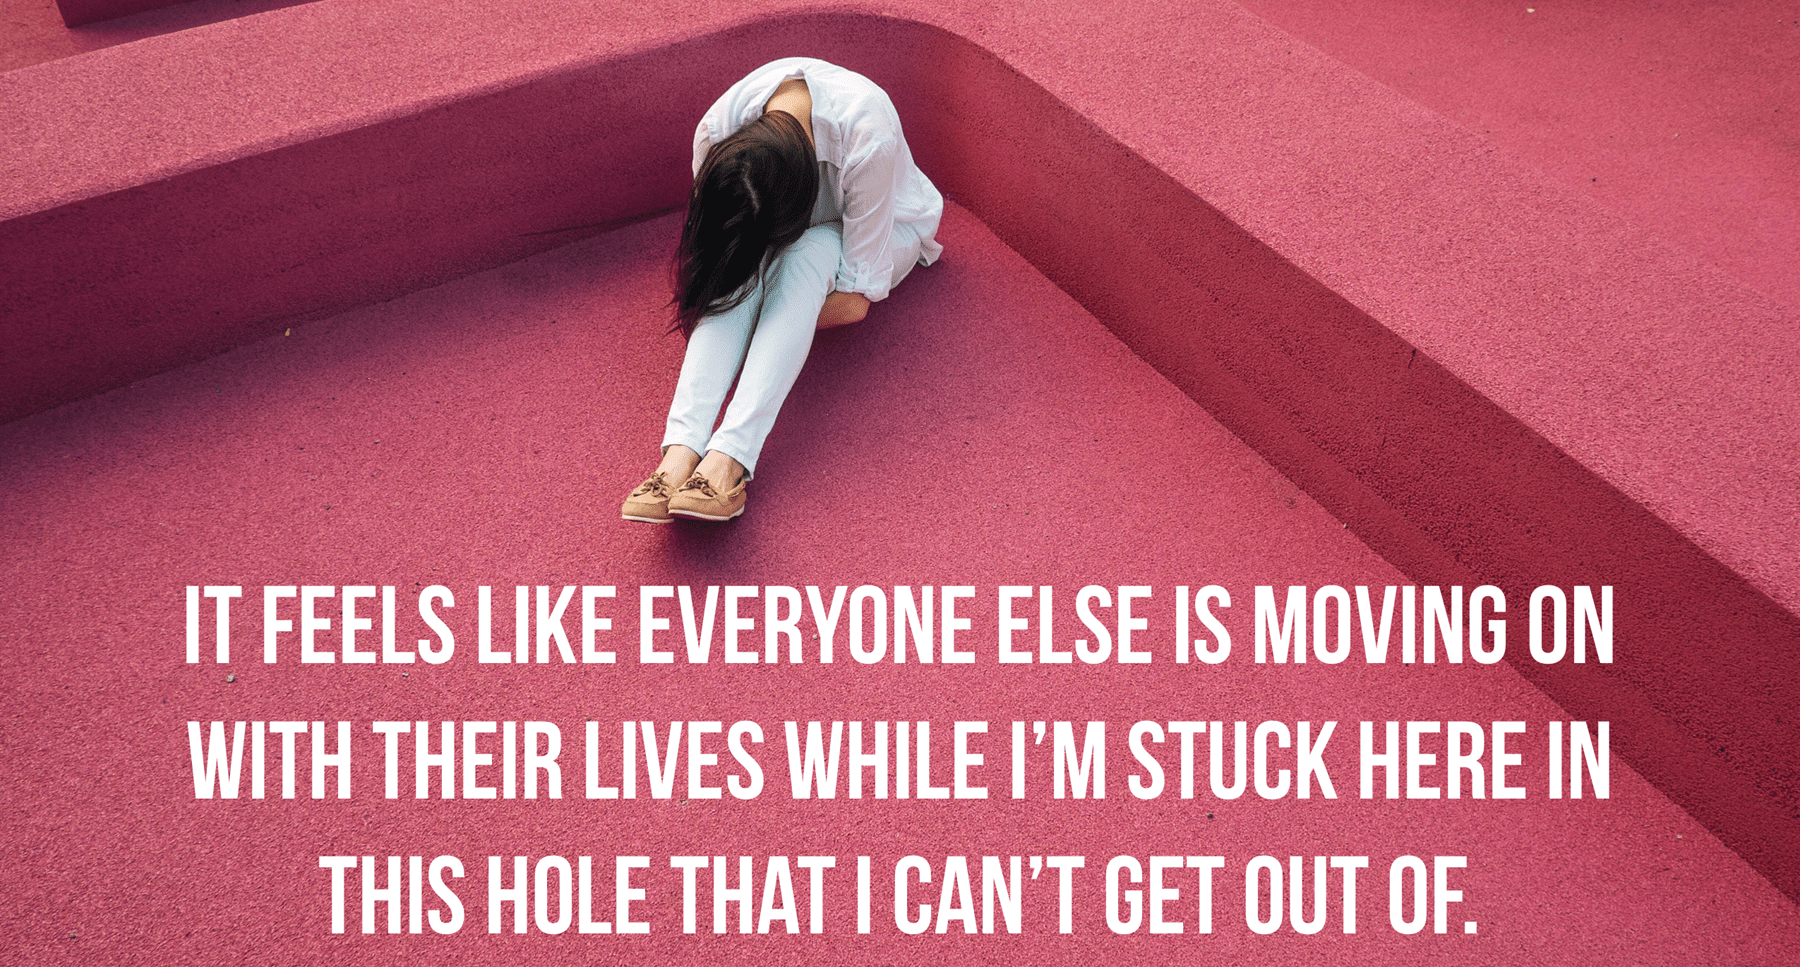 depression feels like you are in a hole and can't climb out